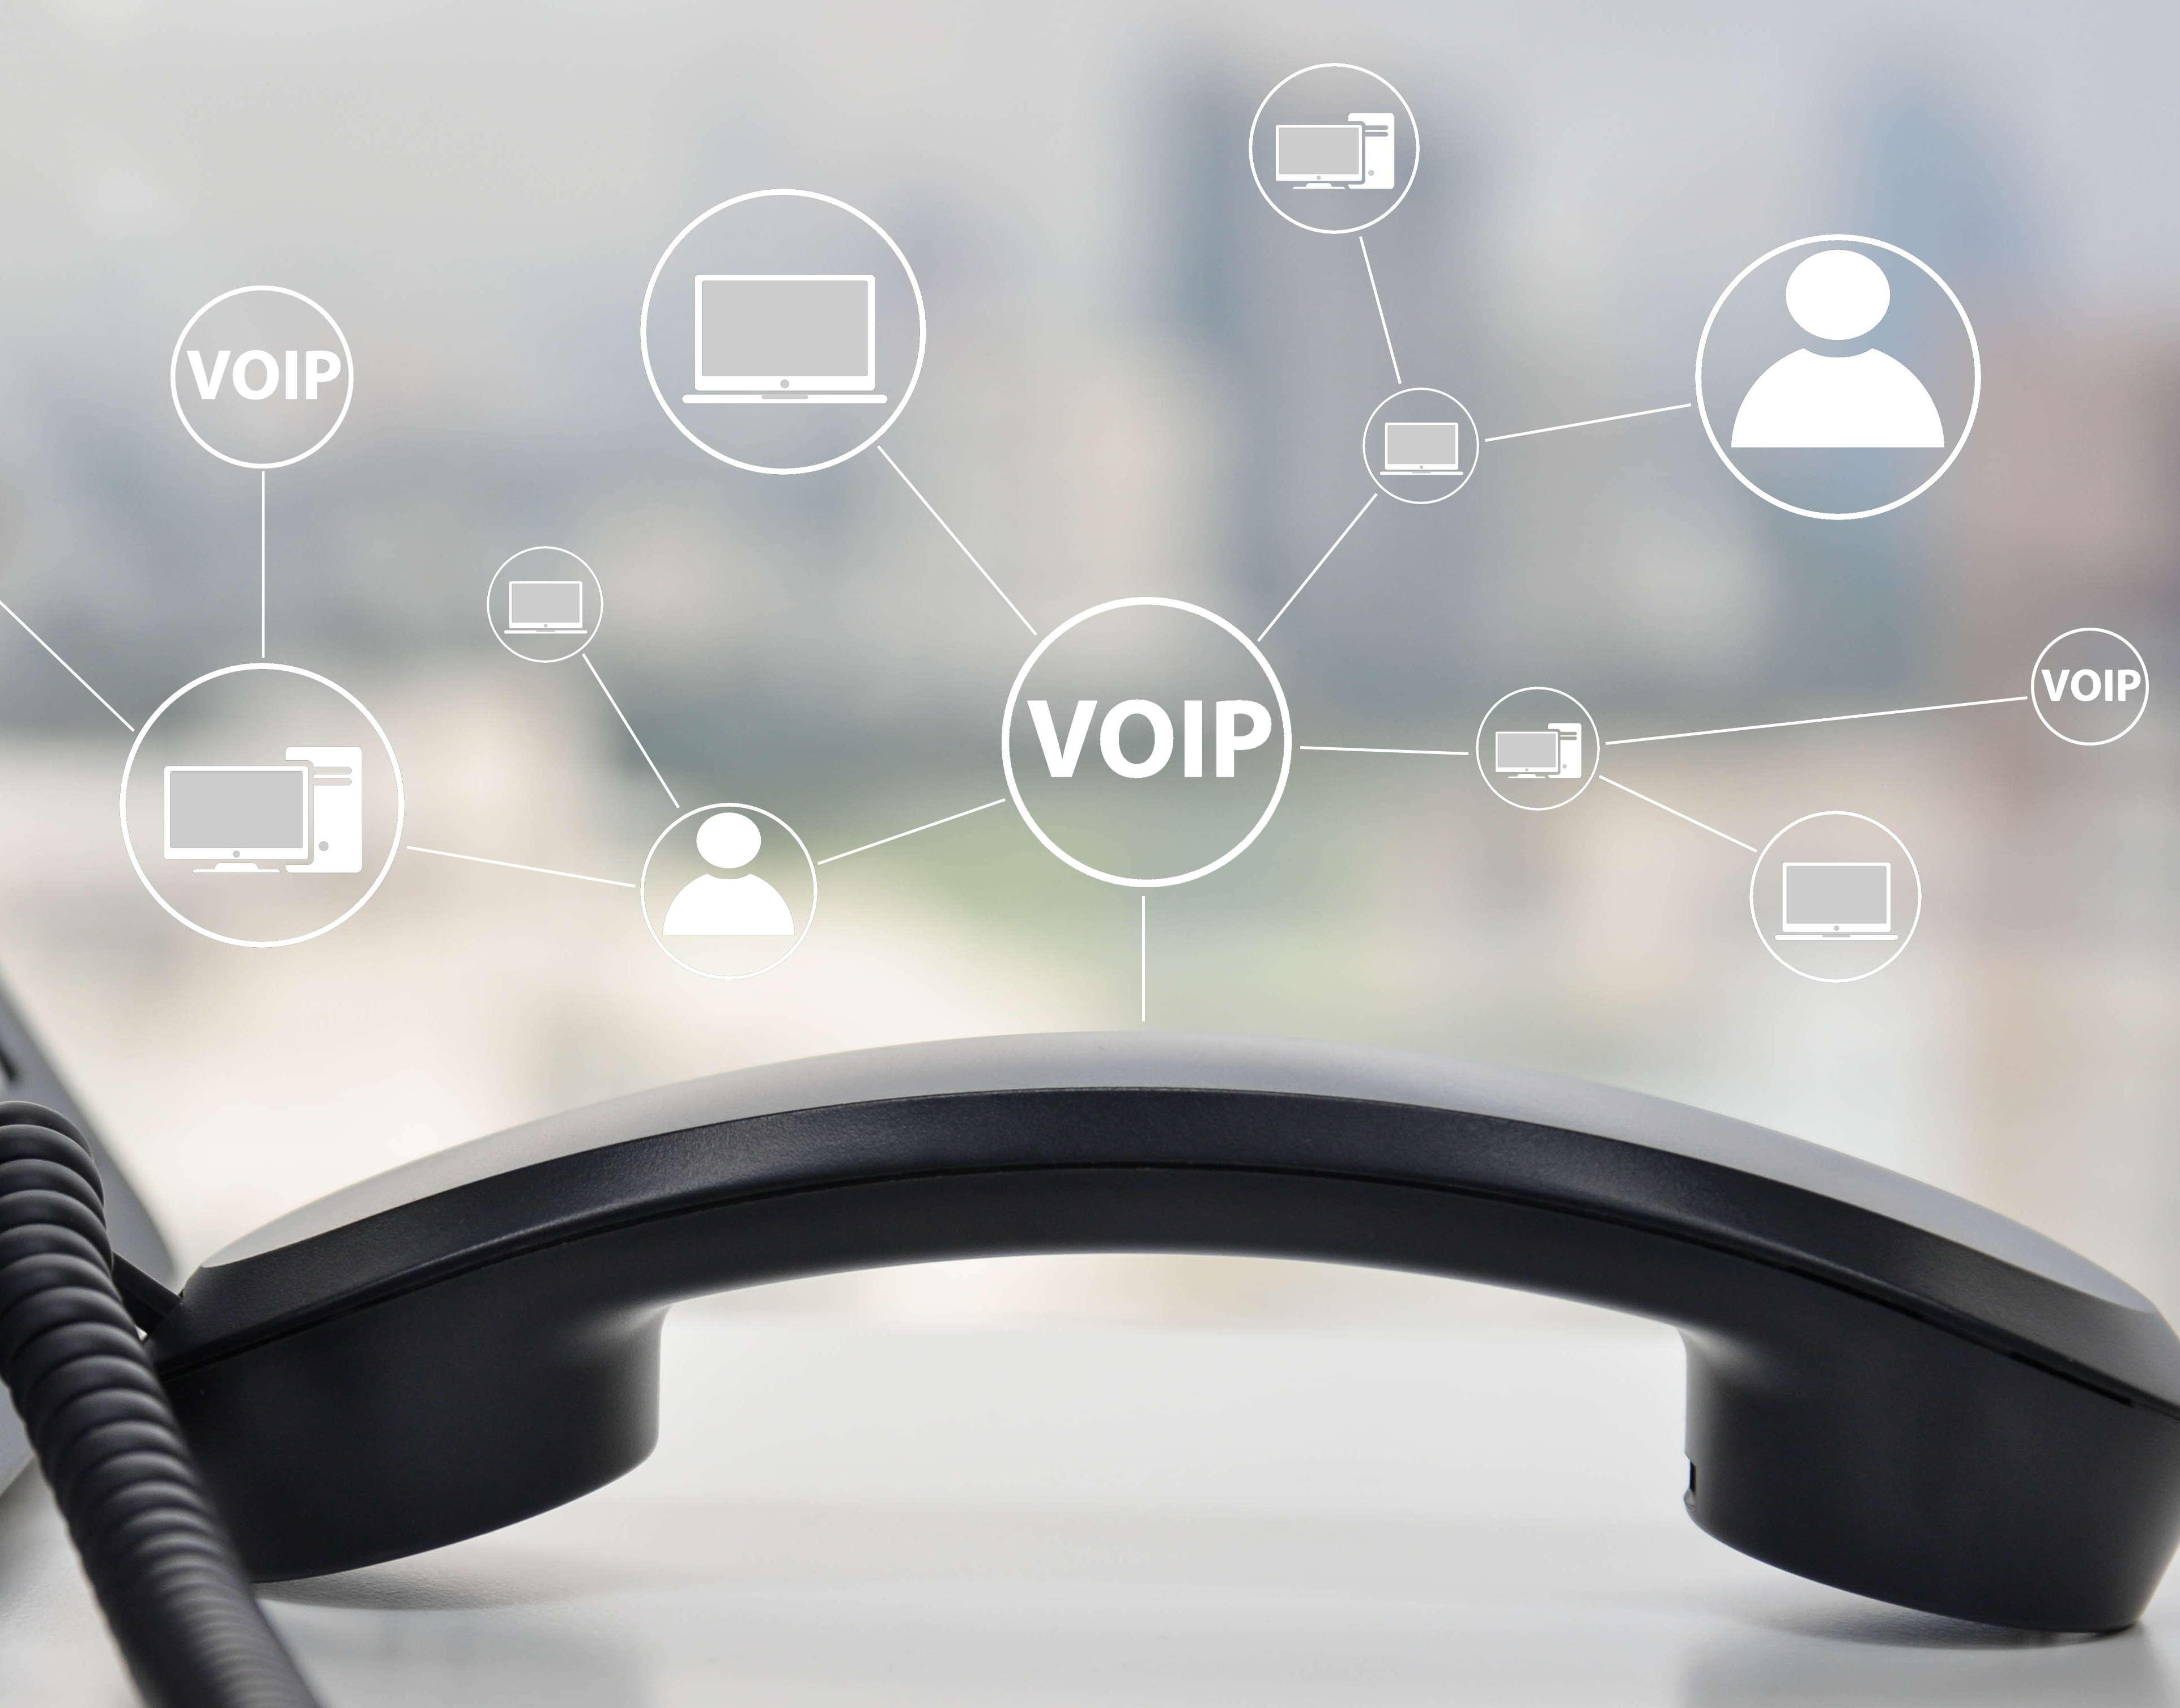 voip iot blog image